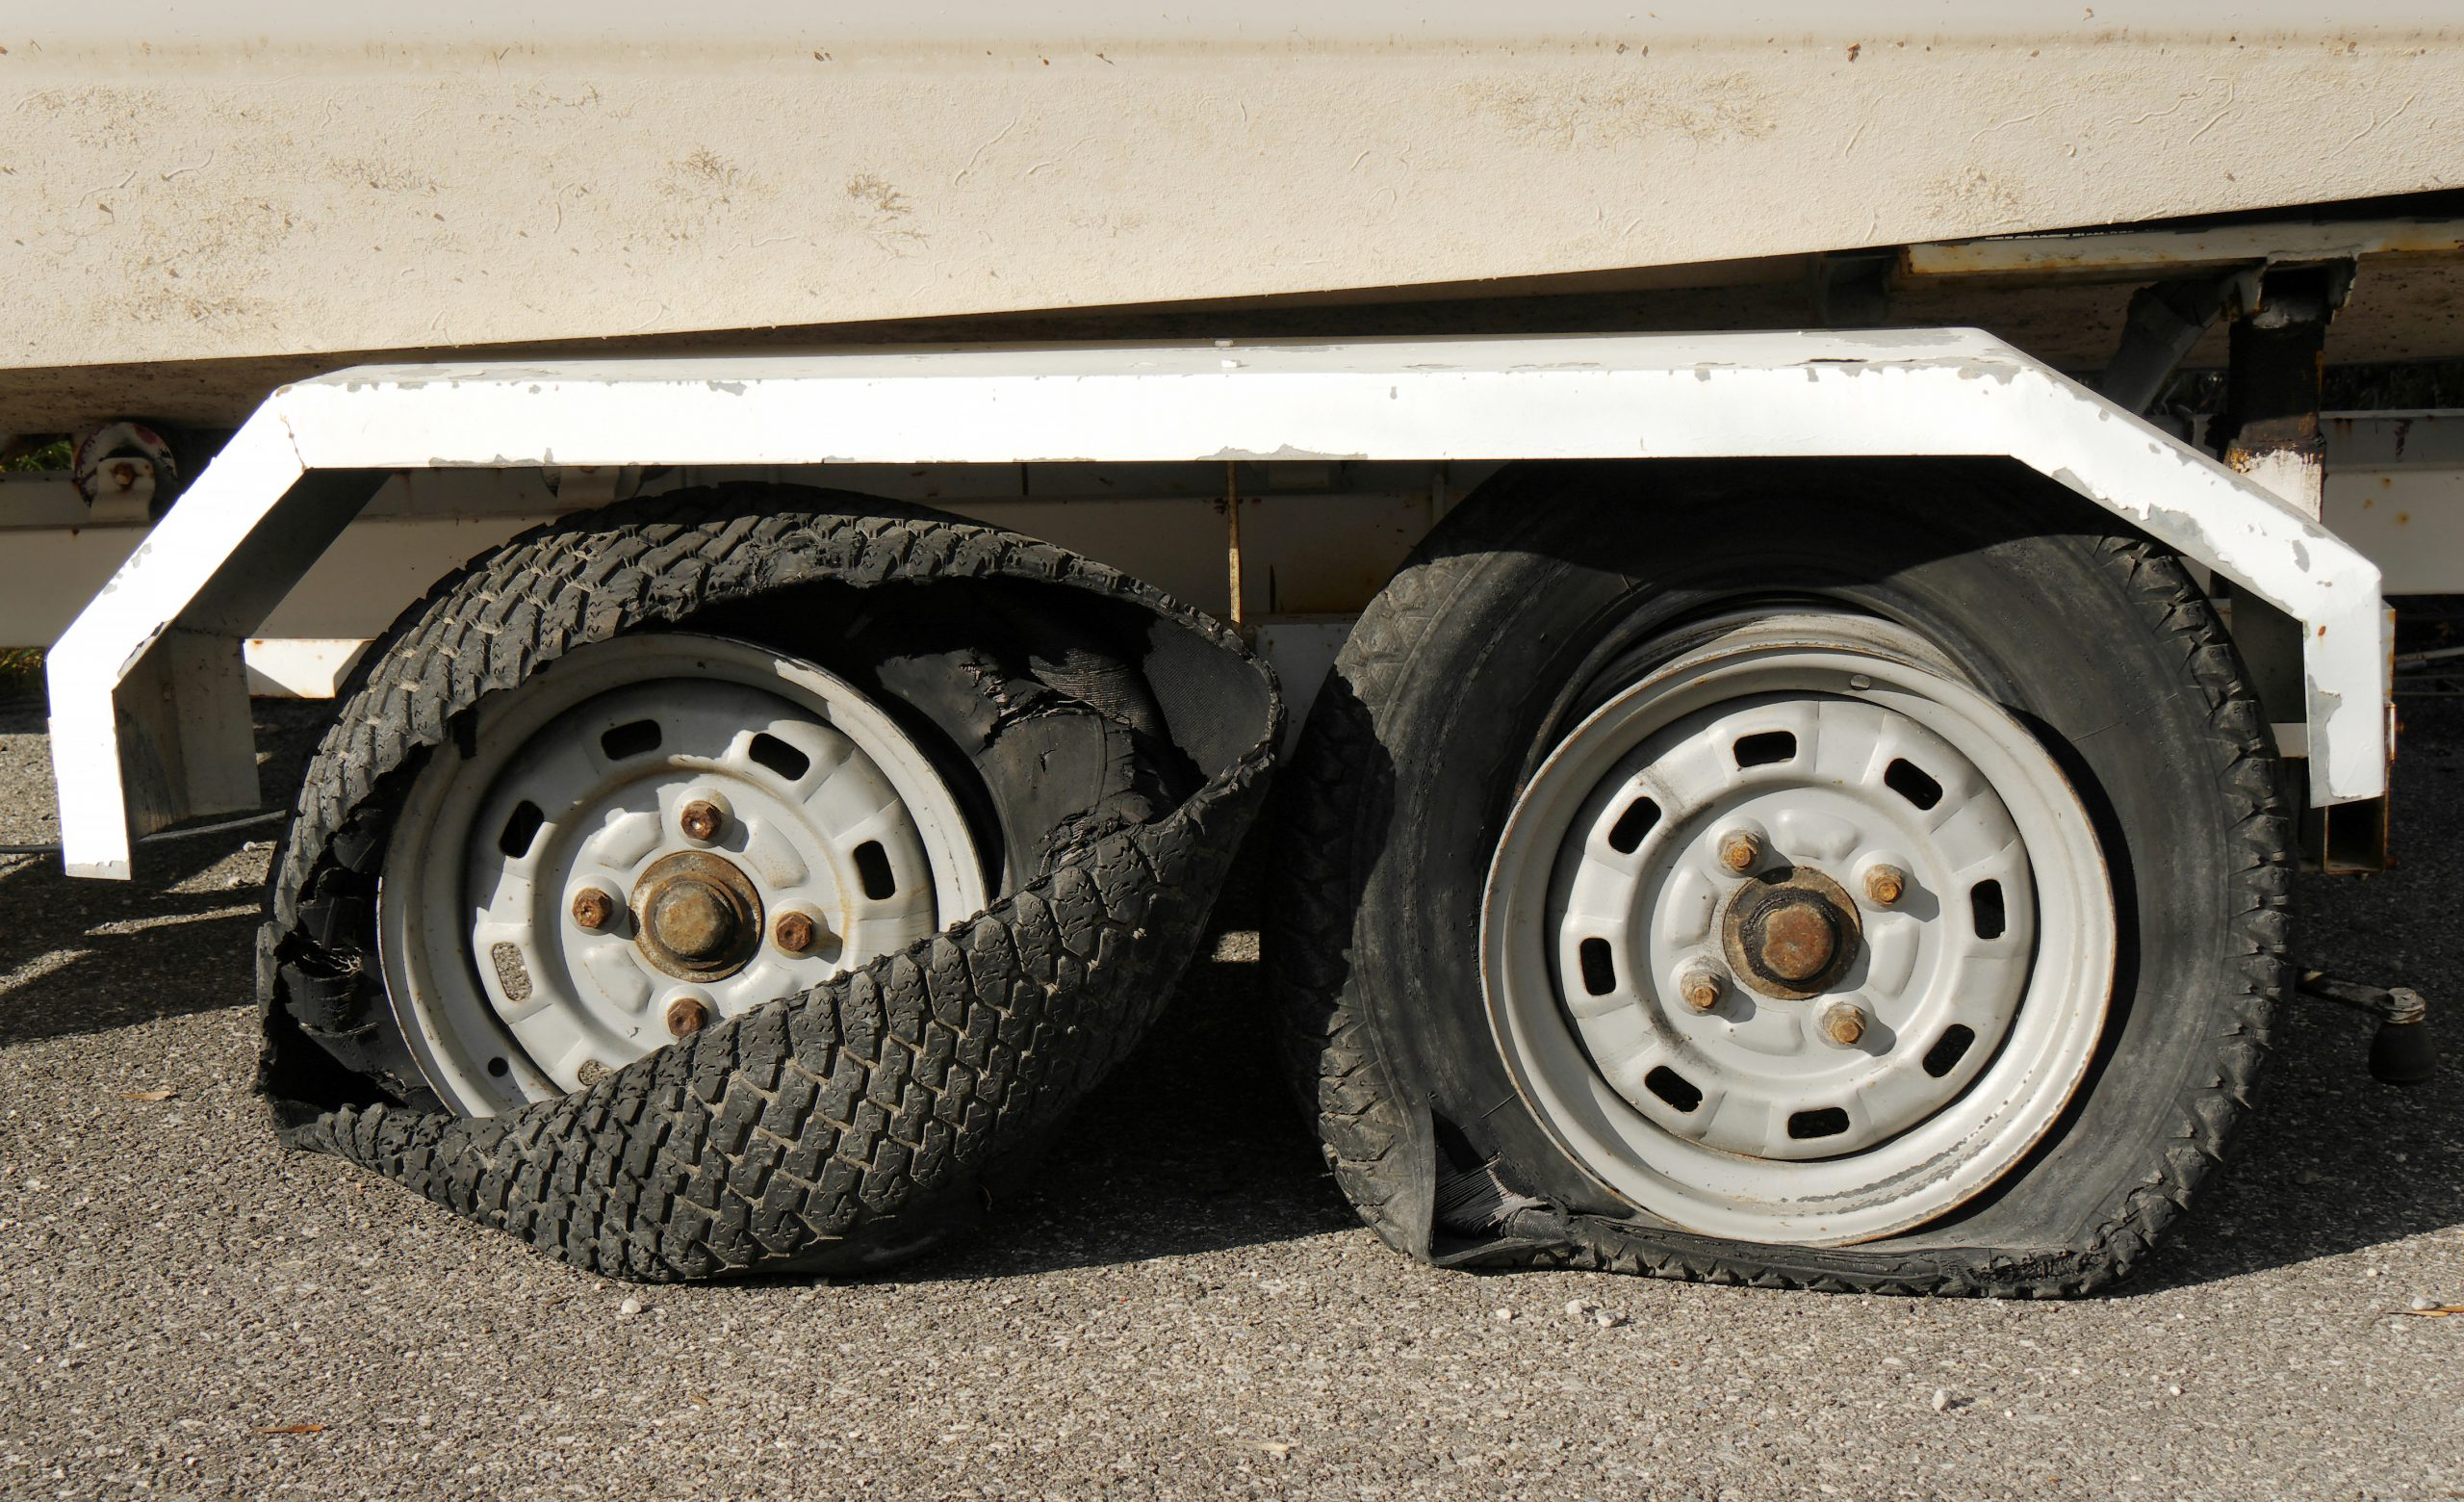 two-blown-out-truck-tires-on-trailer